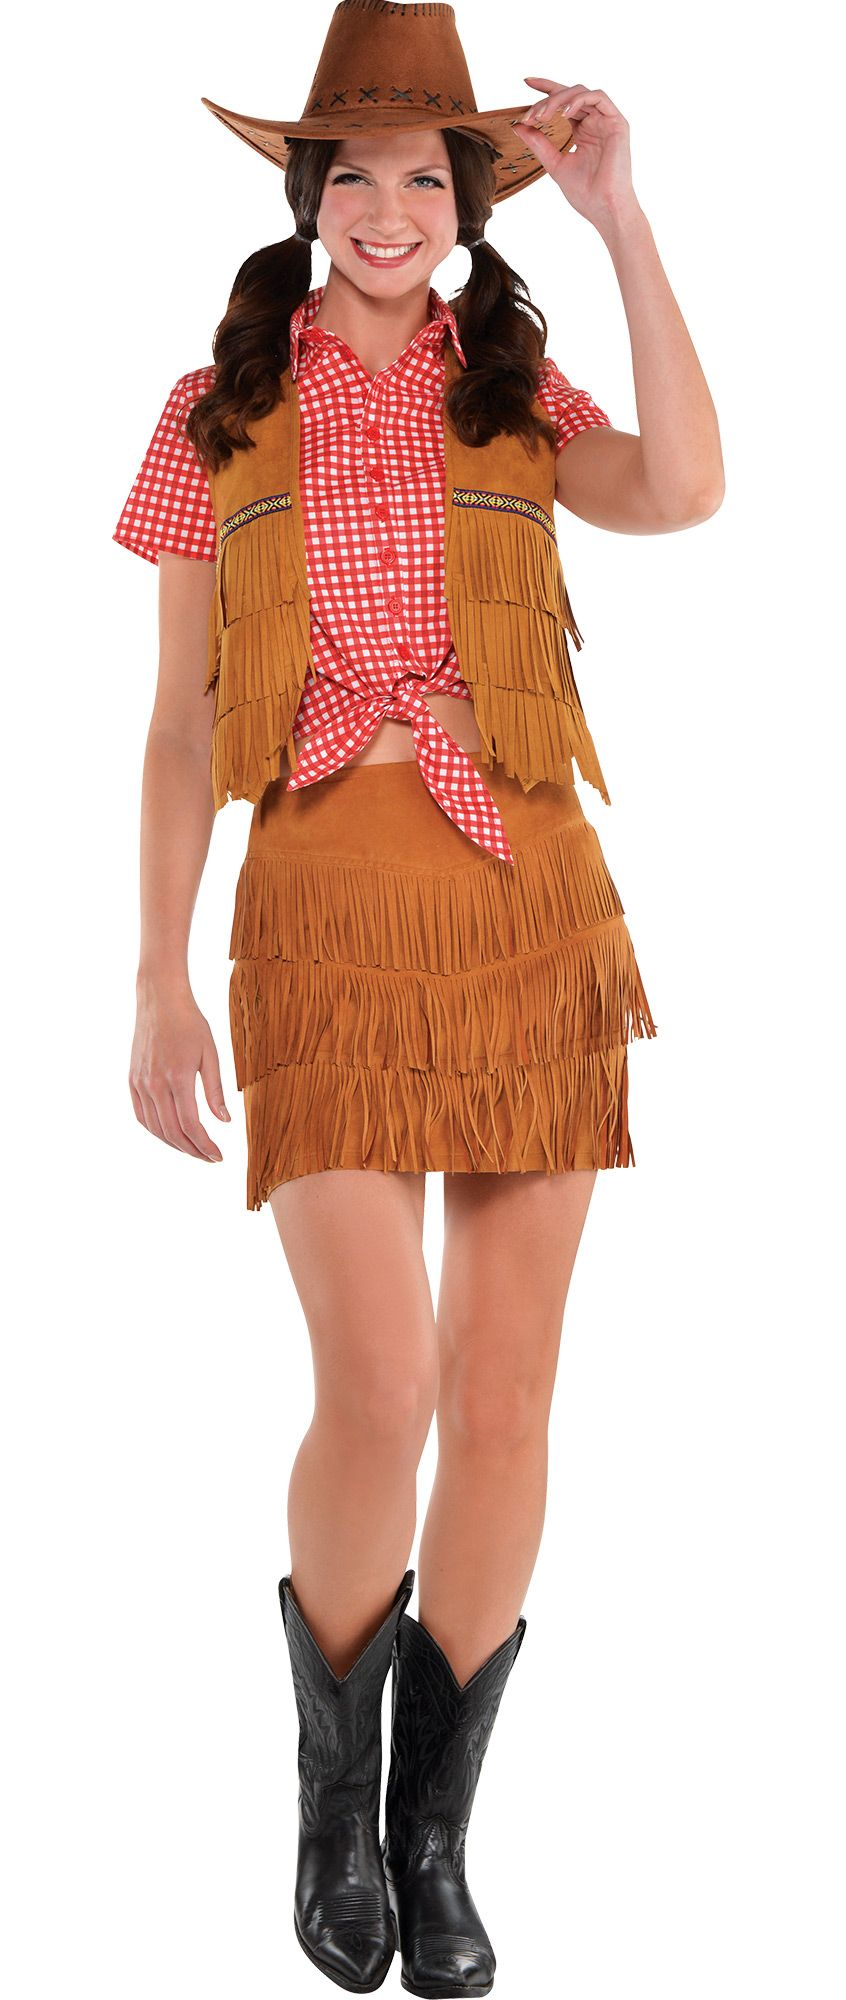 Create Your Look - Women's Fringe Cowgirl